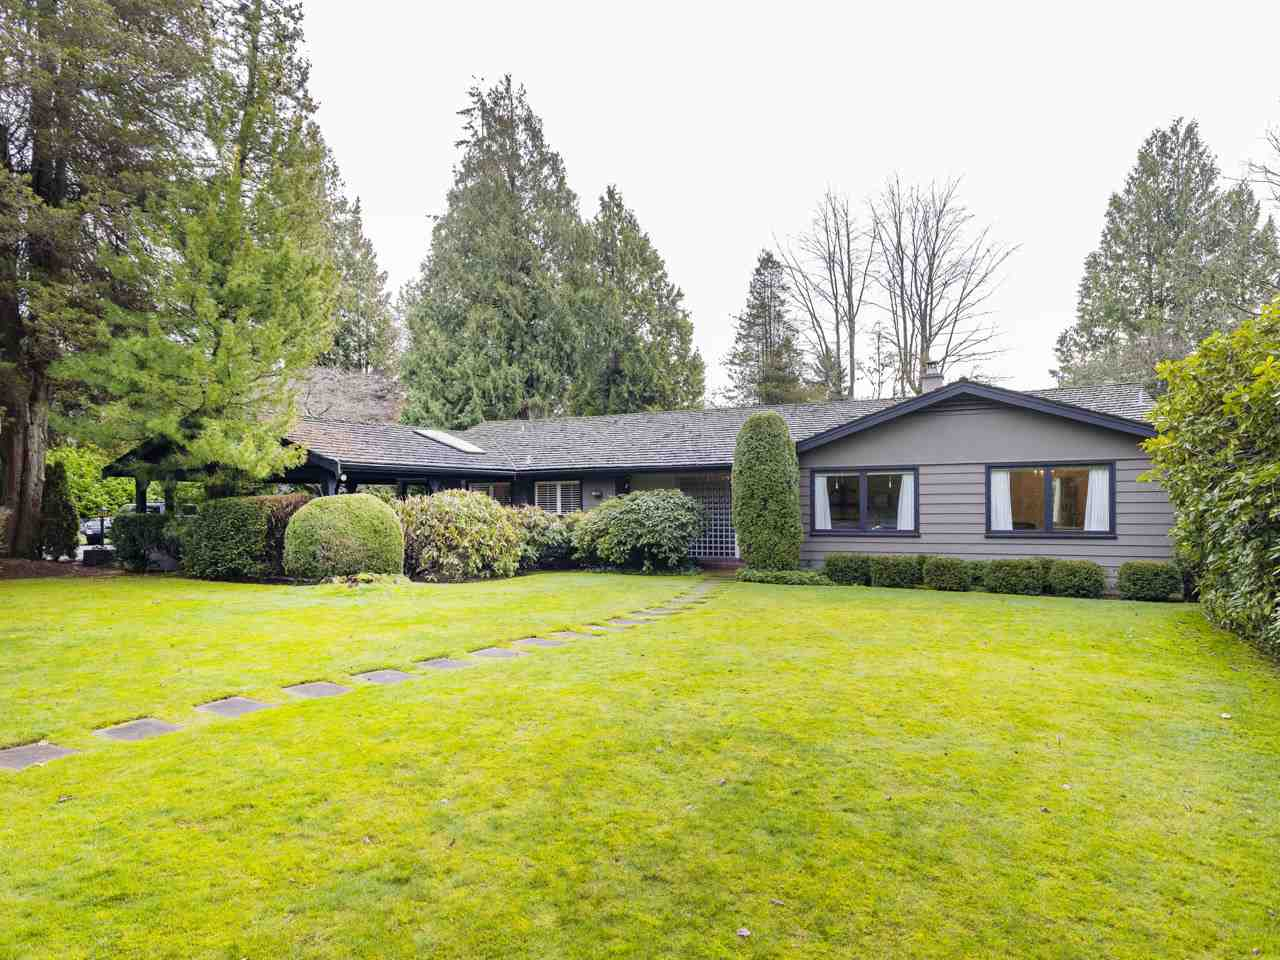 1308 W 54TH AVENUE - South Granville House/Single Family for sale, 4 Bedrooms (R2528346) - #2